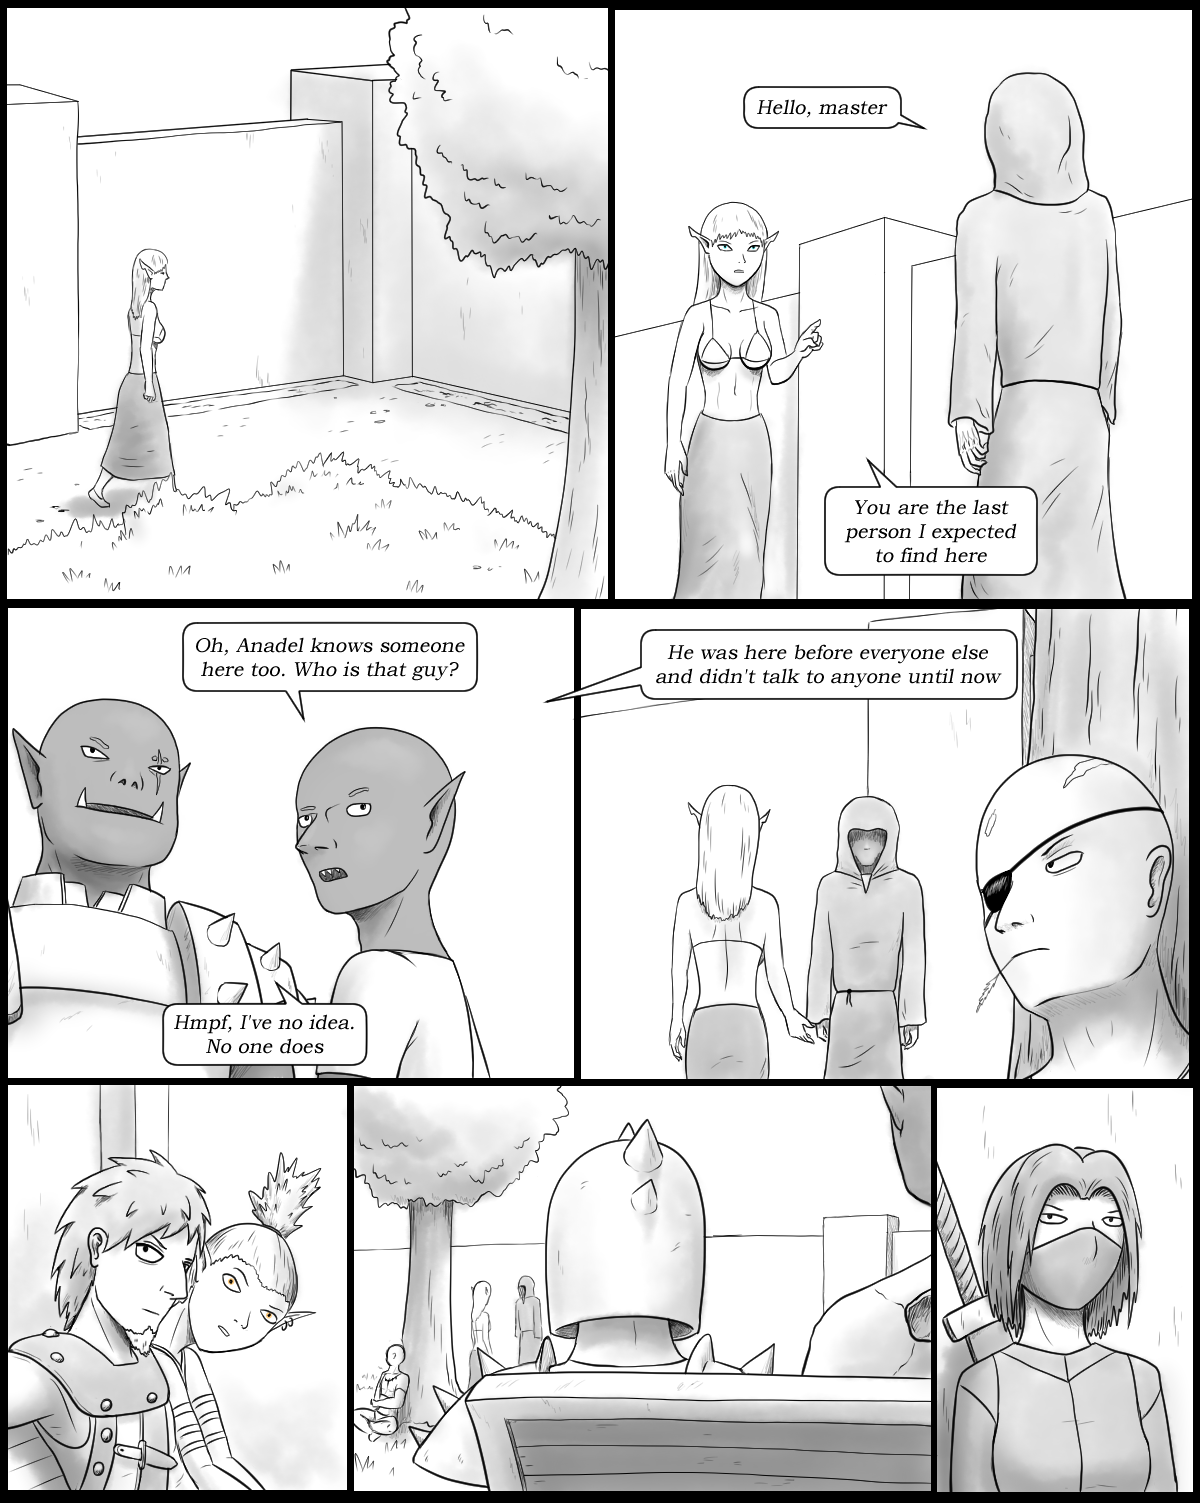 Page 82 - The strange one